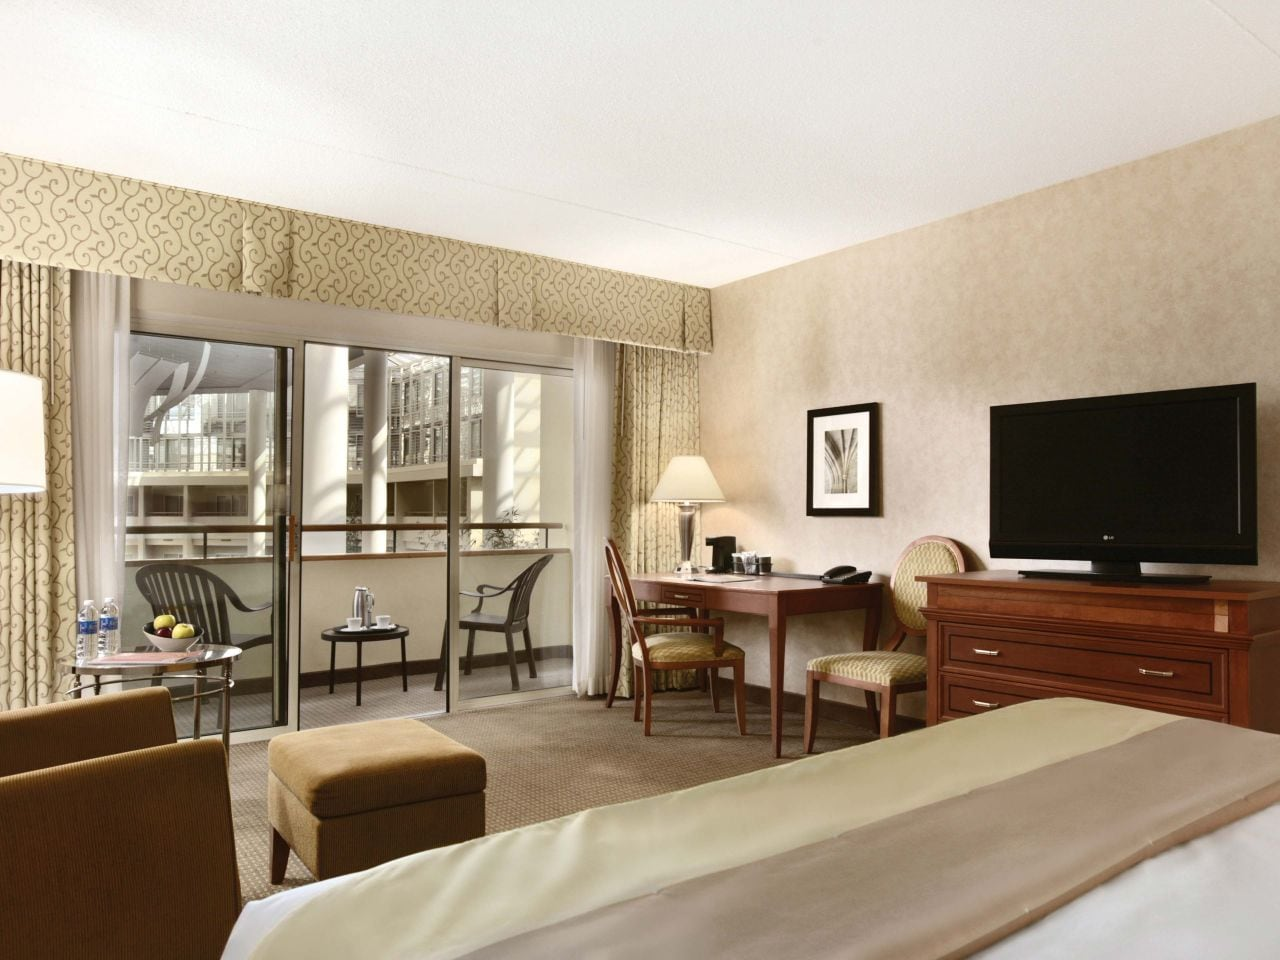 King-sized bed by large window with TV and armchair in hotel room